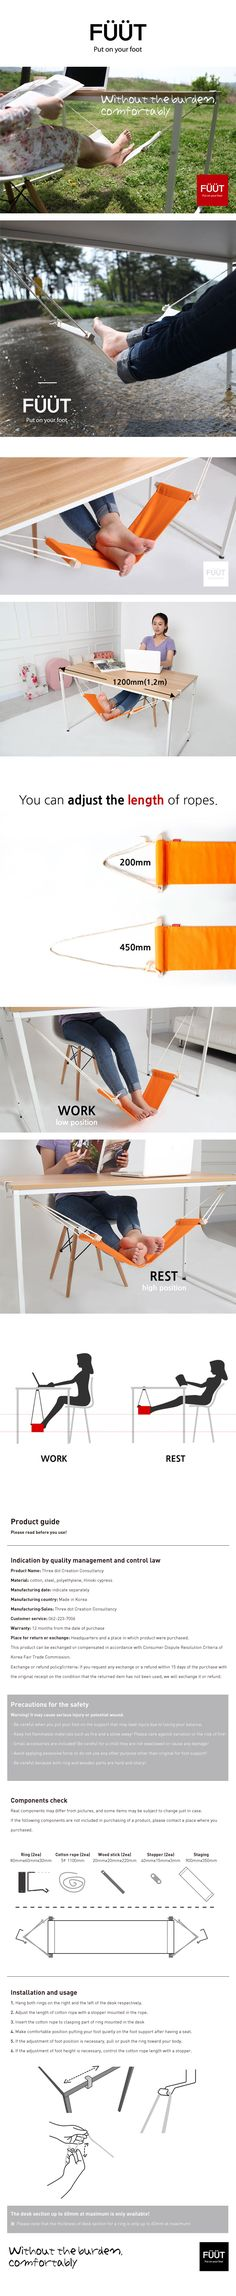 The Fuut by Connect Design is a foot hammock for your feet. I am guilty of propping up my feet on just about anything, so I would love to have this under my desk. $30 gets you one.